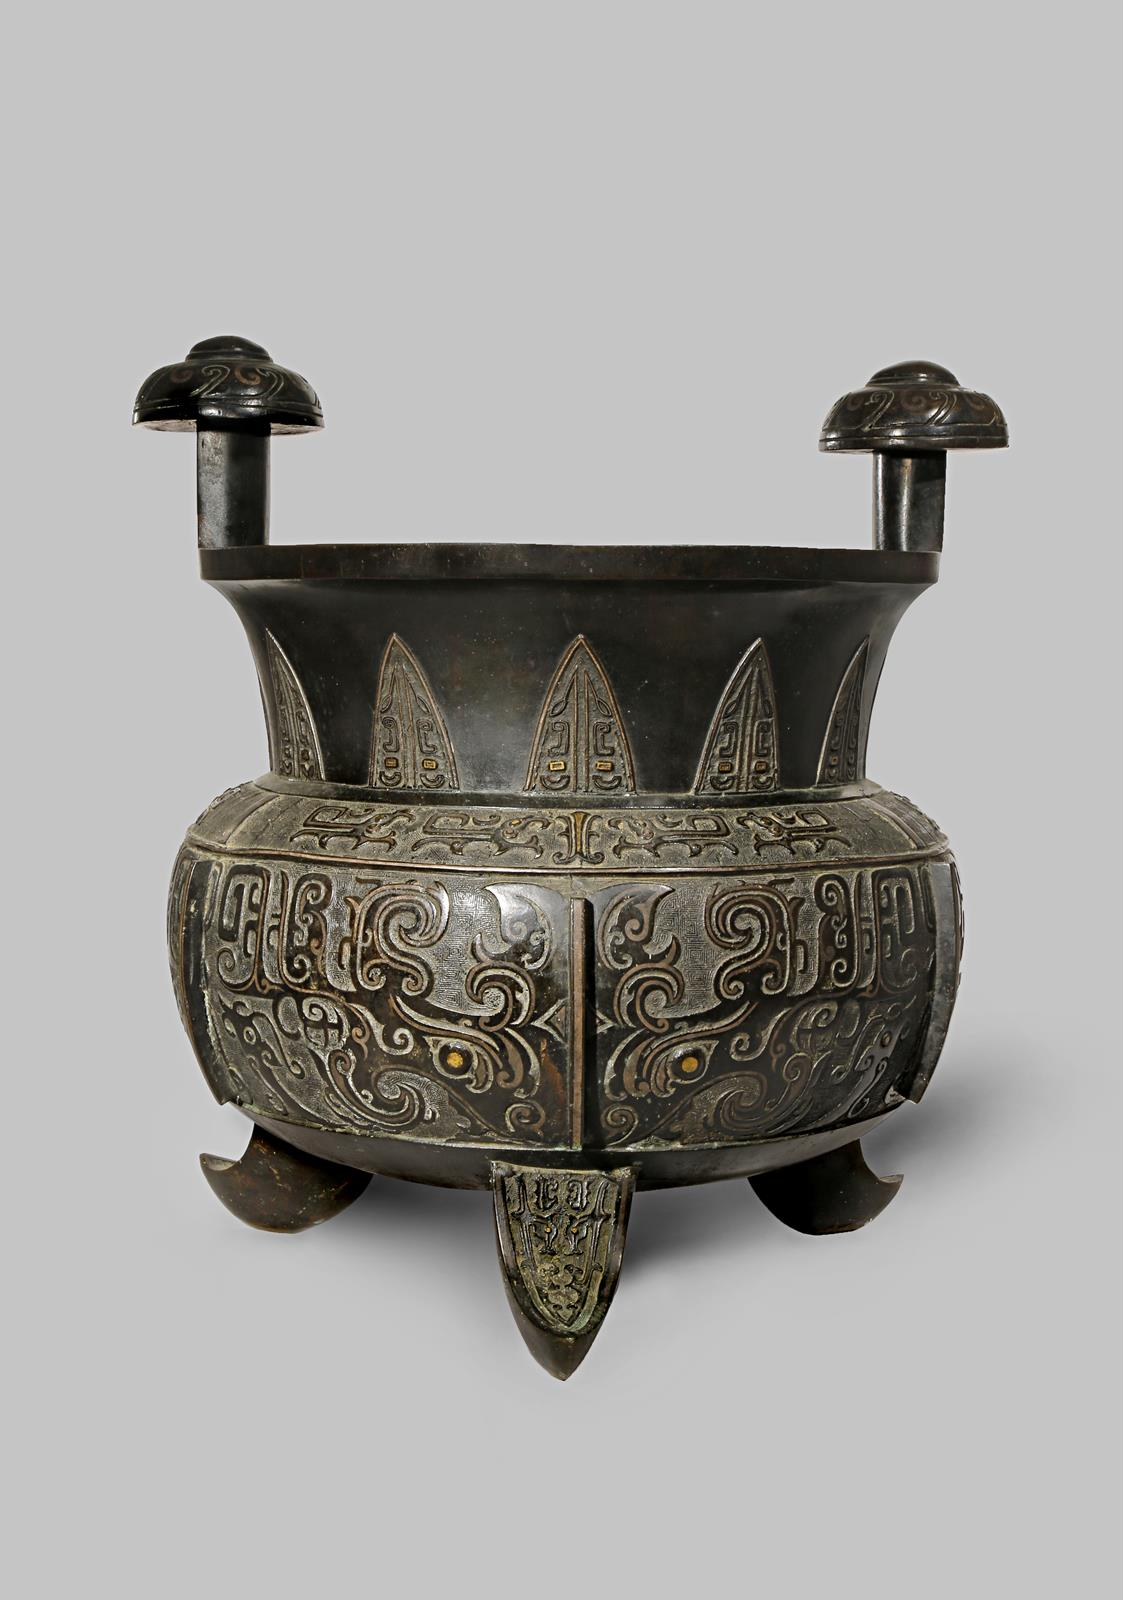 A MASSIVE CHINESE GOLD AND SILVER INLAID ARCHAISTIC INCENSE BURNER